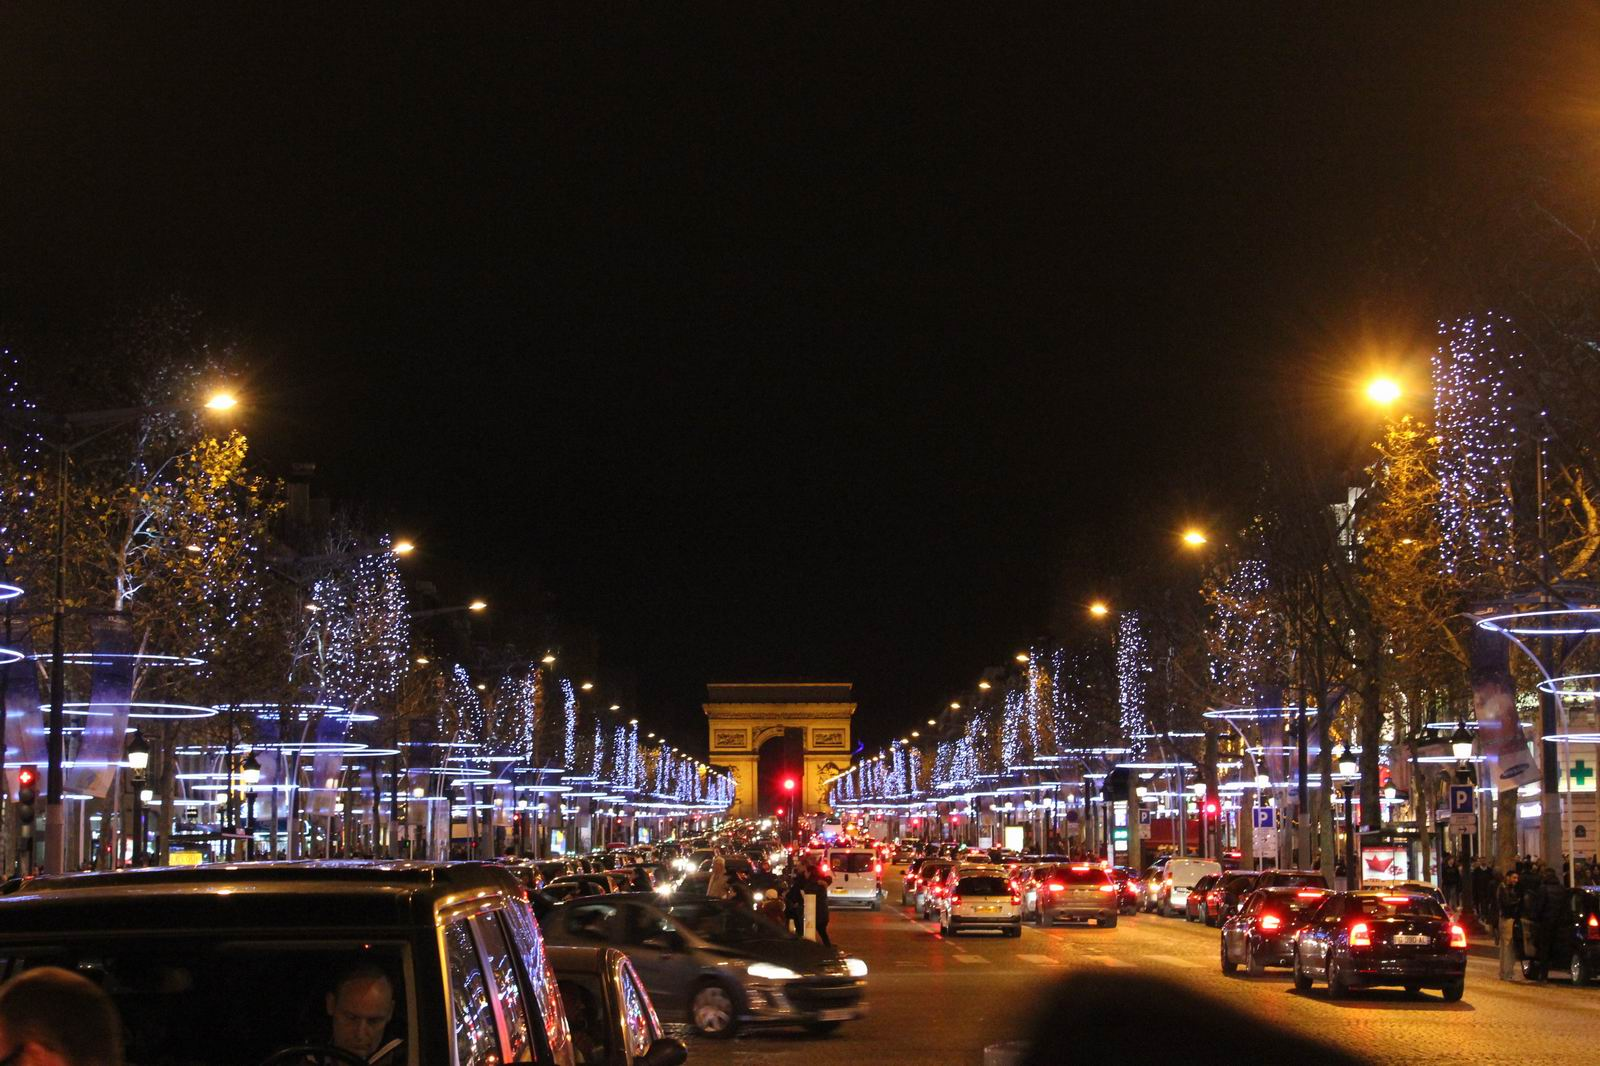 #A86A23 Illuminations Champs Elysees Cake Ideas And Designs 5365 decorations de noel champs elysees 1600x1066 px @ aertt.com